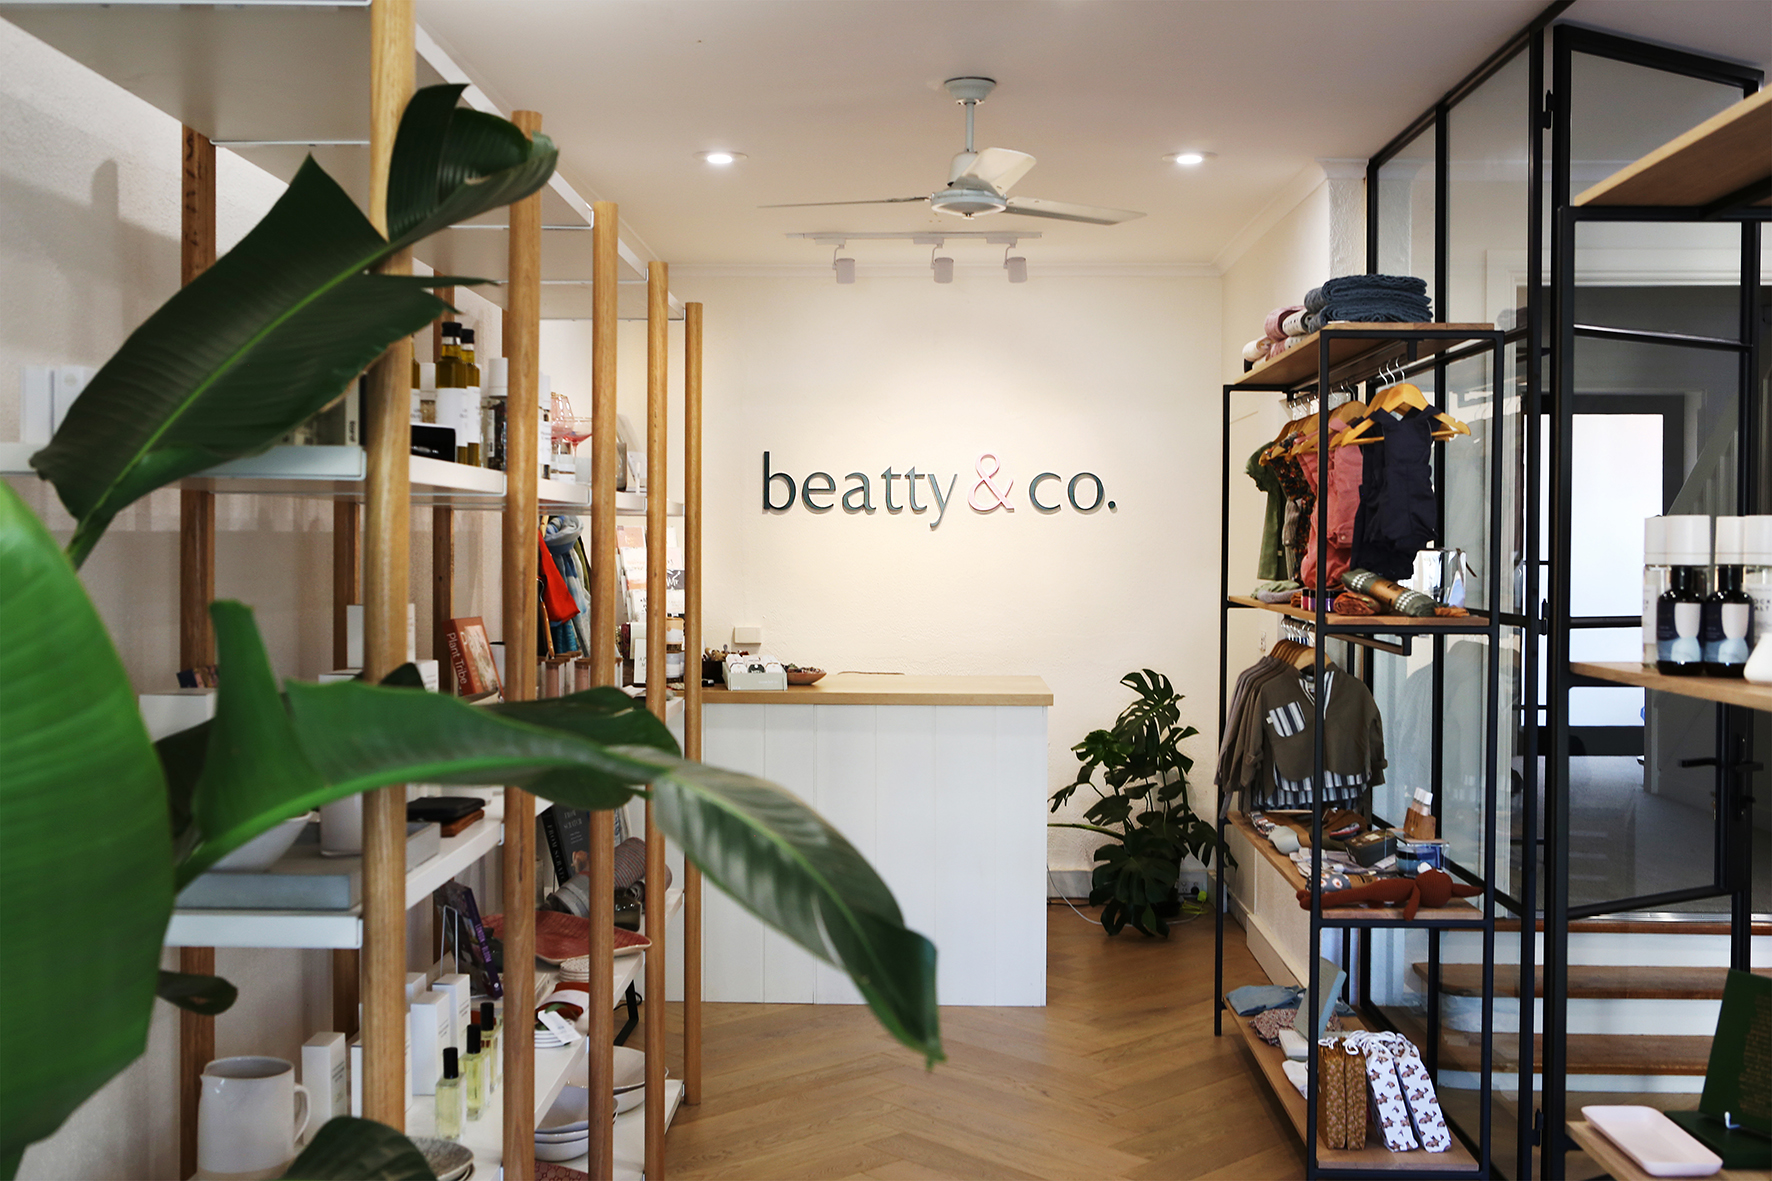 beatty and co store front